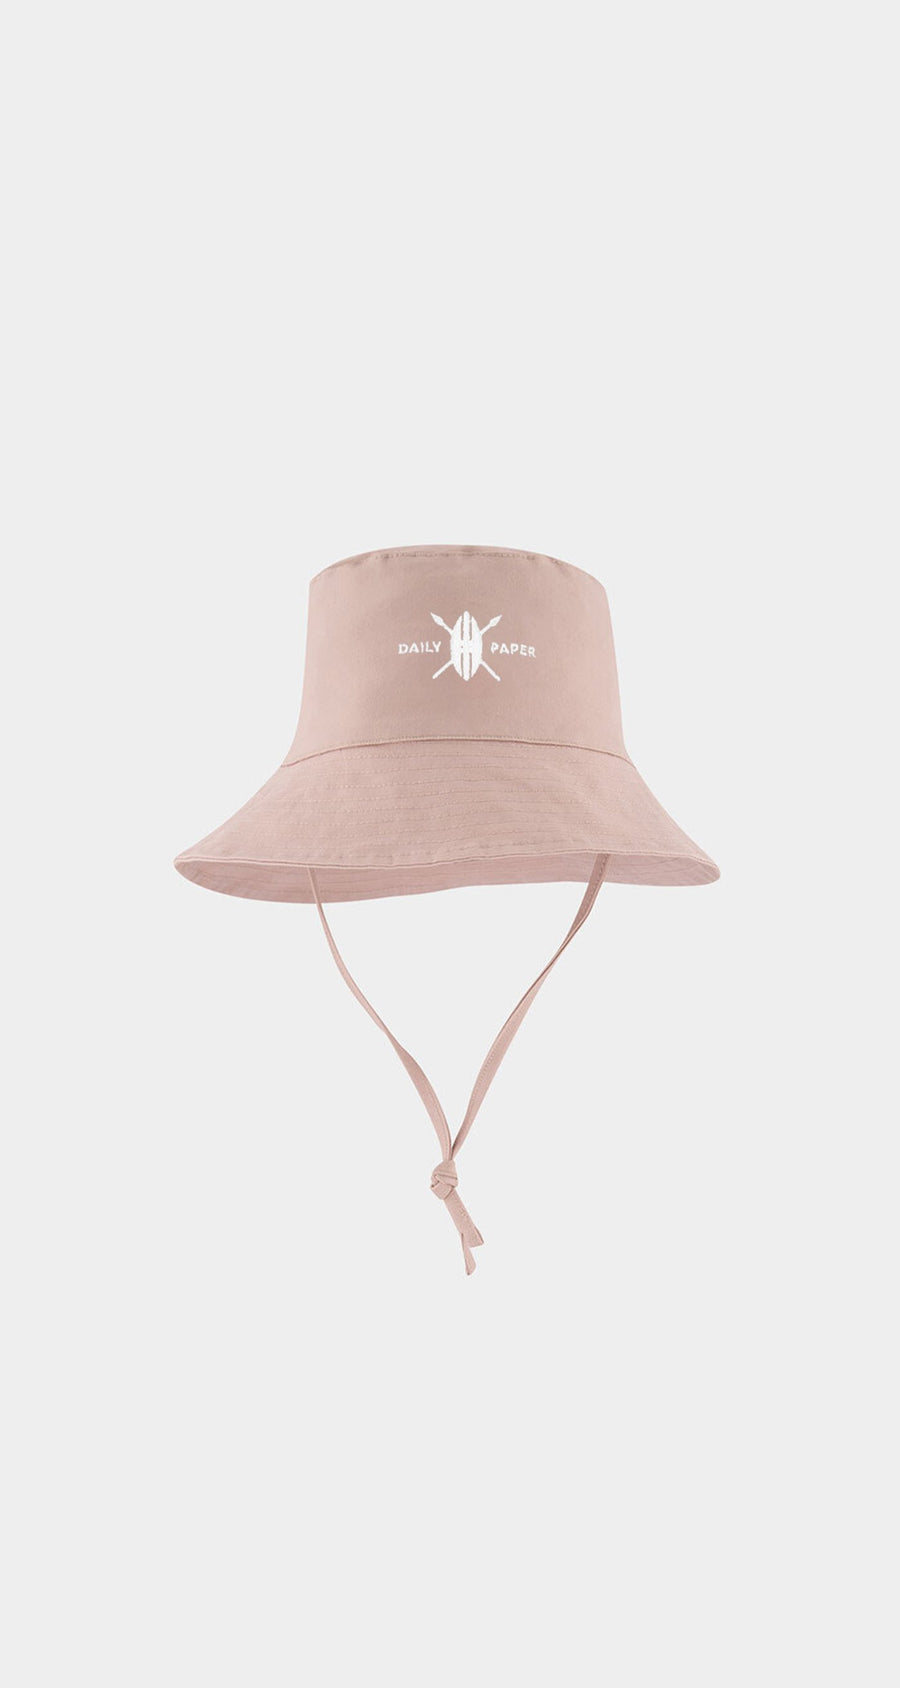 Daily Paper - Misty Rose Baby Logo Bucket Hat Front